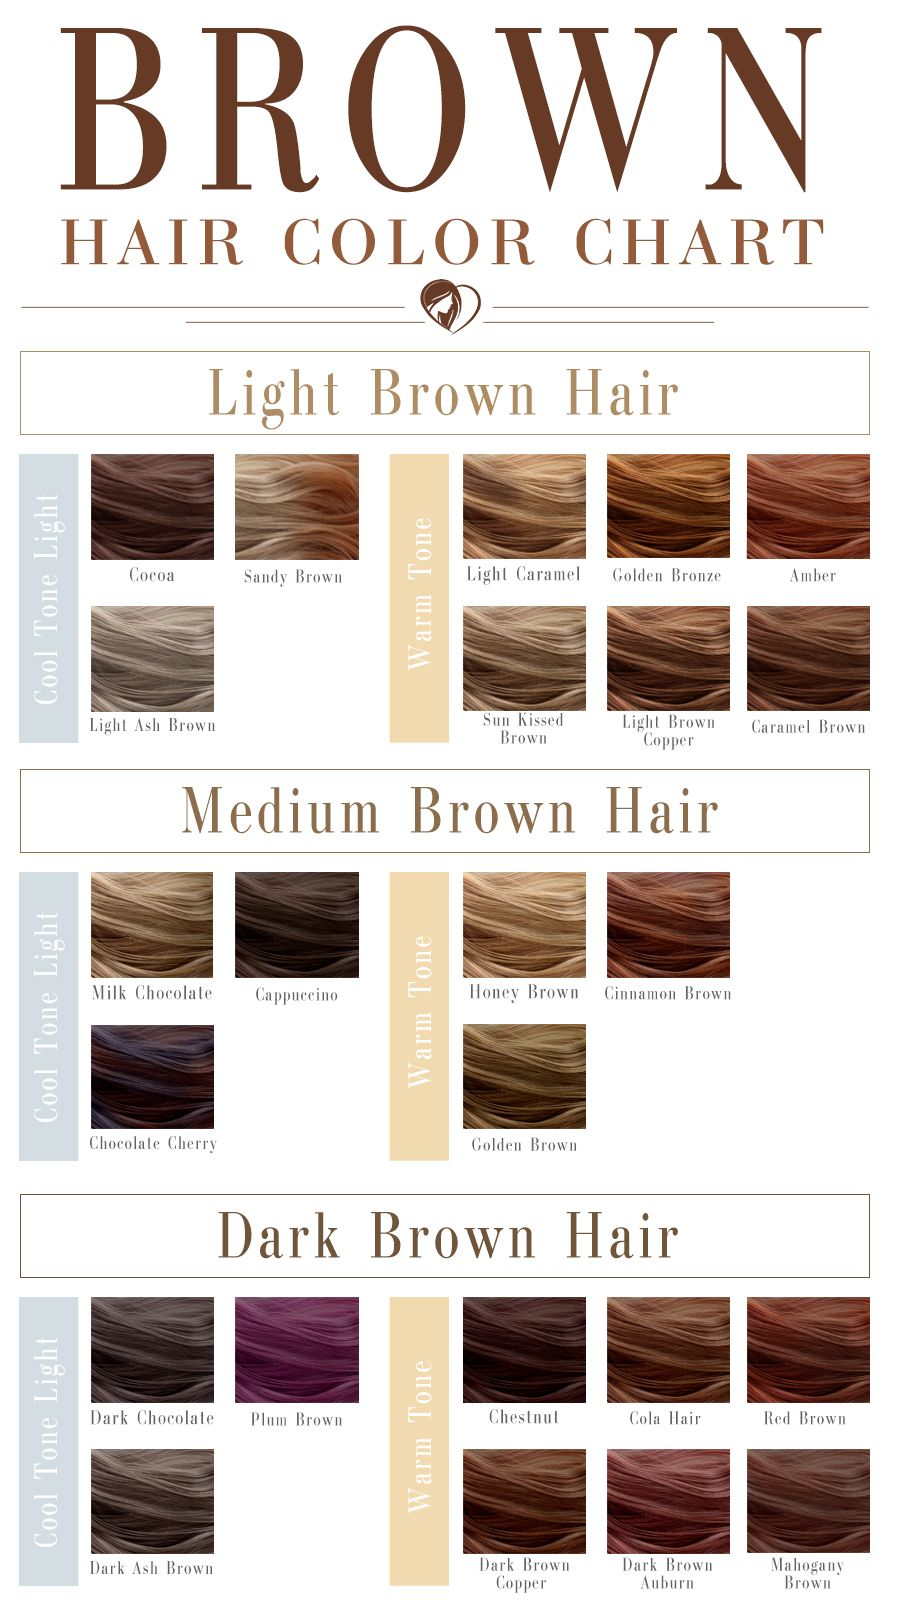 What Shade Of Brown Hair Color Chart Is The Best For You #brunette #brownhair